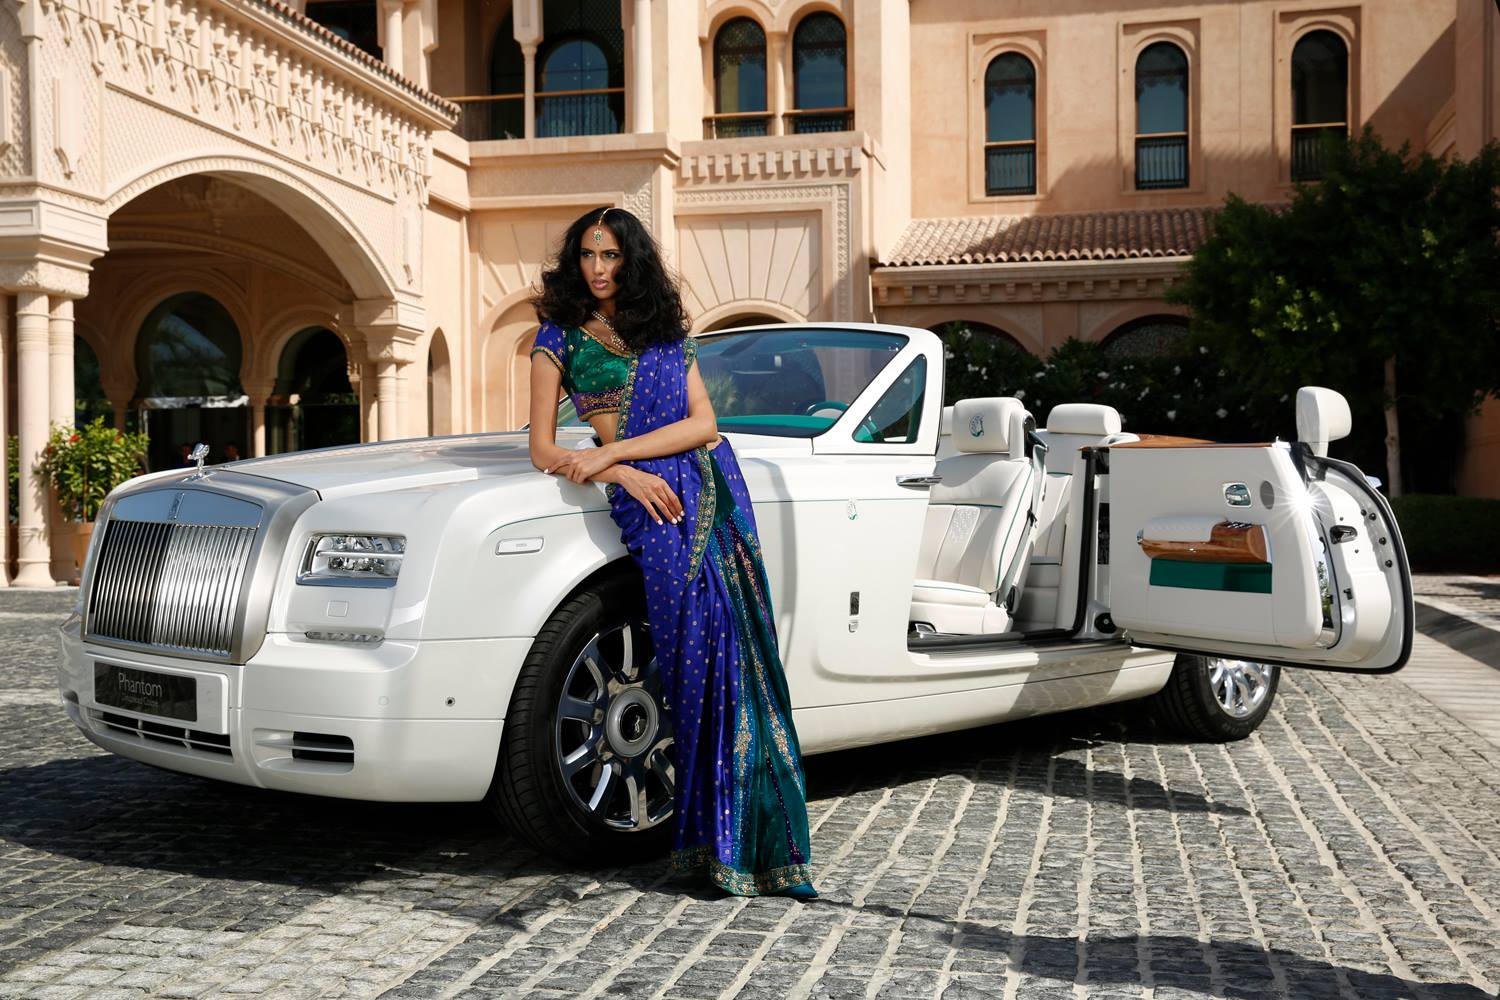 Photo Of The Day: Rolls-Royce Phantom Maharaja Edition - GTspirit